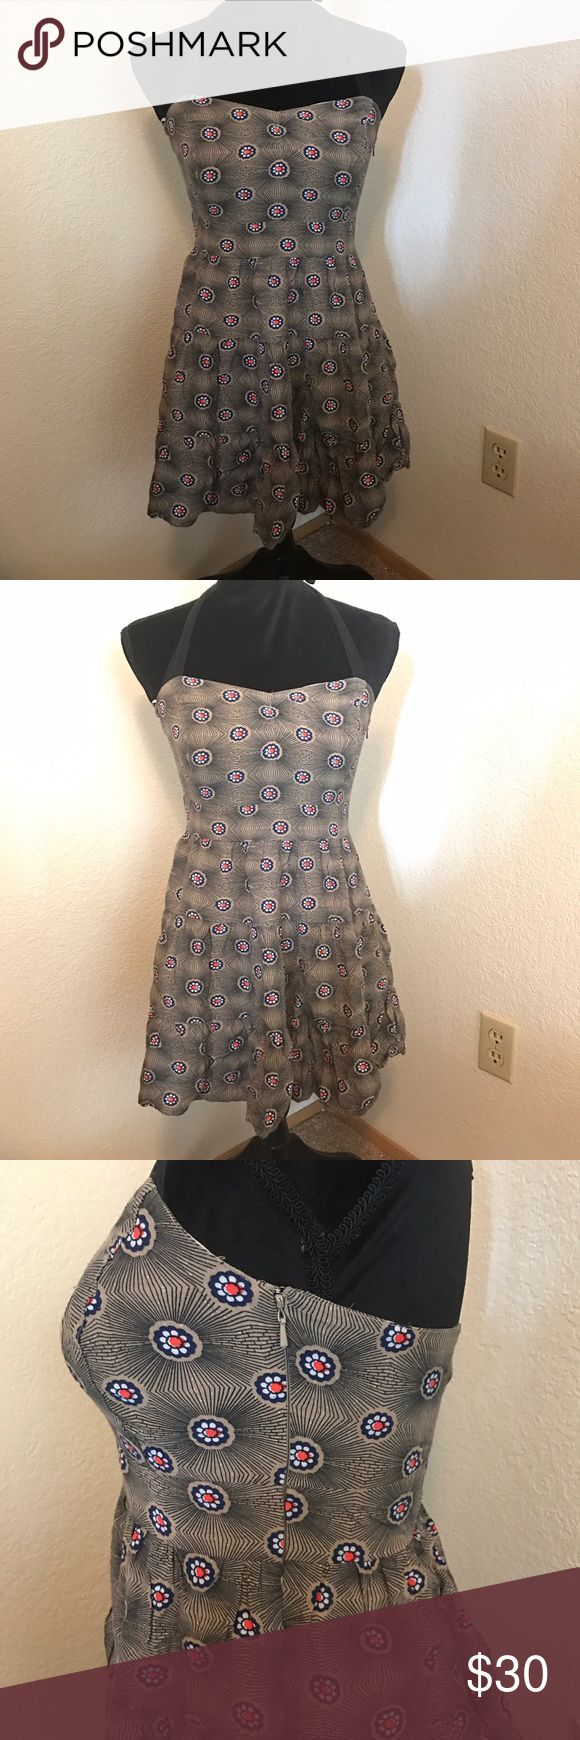 Free People Size 4 Halter Dress This dress is in good condition. It is an halter dress and it is a size 4. There is a zipper part on the side to help keep the dress in place. Free People Dresses Mini